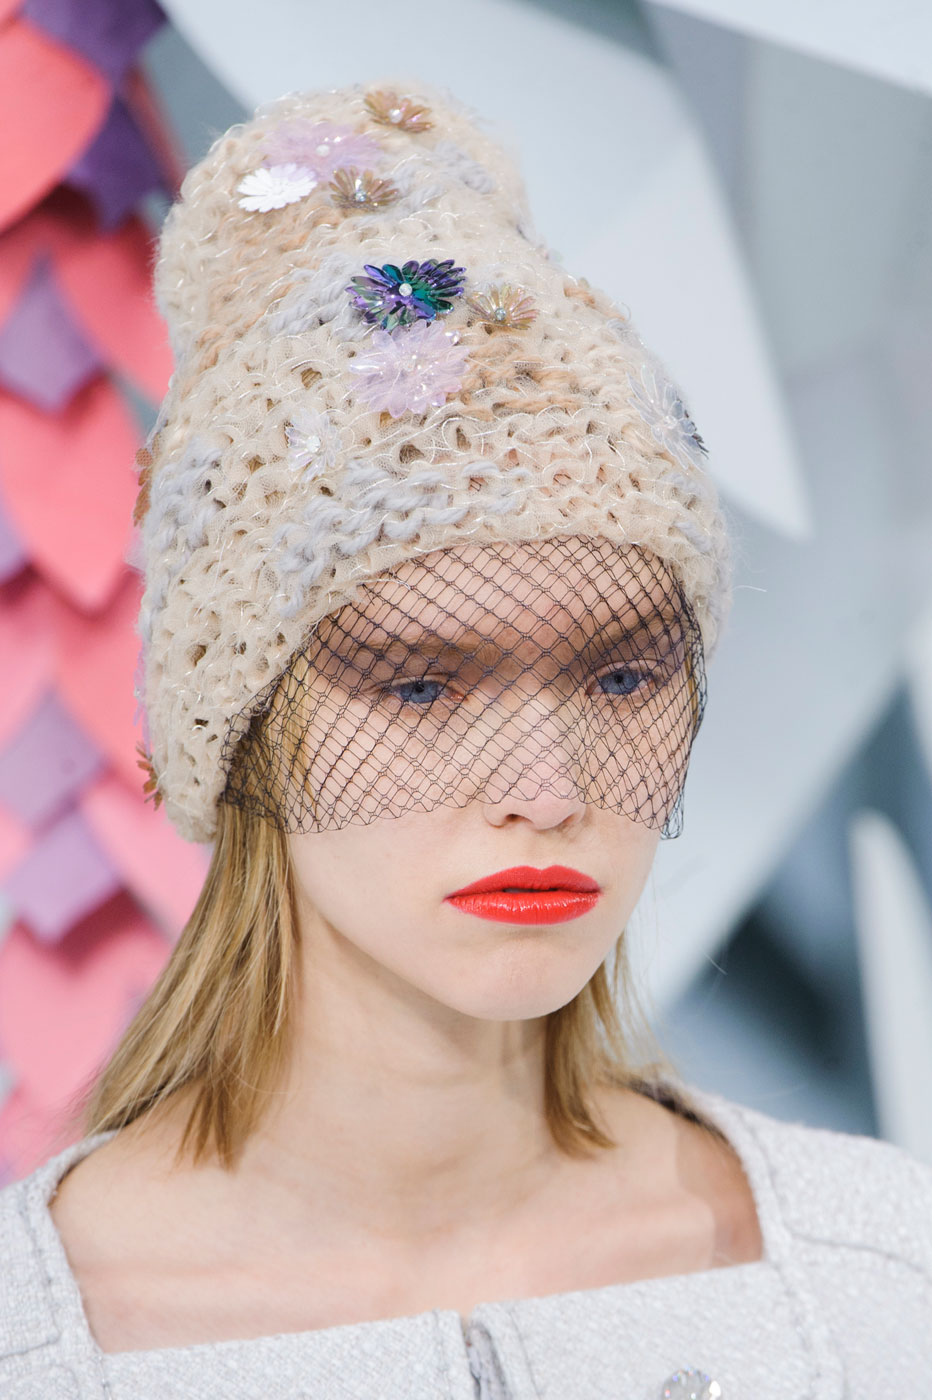 Chanel-fashion-runway-show-close-ups-haute-couture-paris-spring-summer-2015-the-impression-014